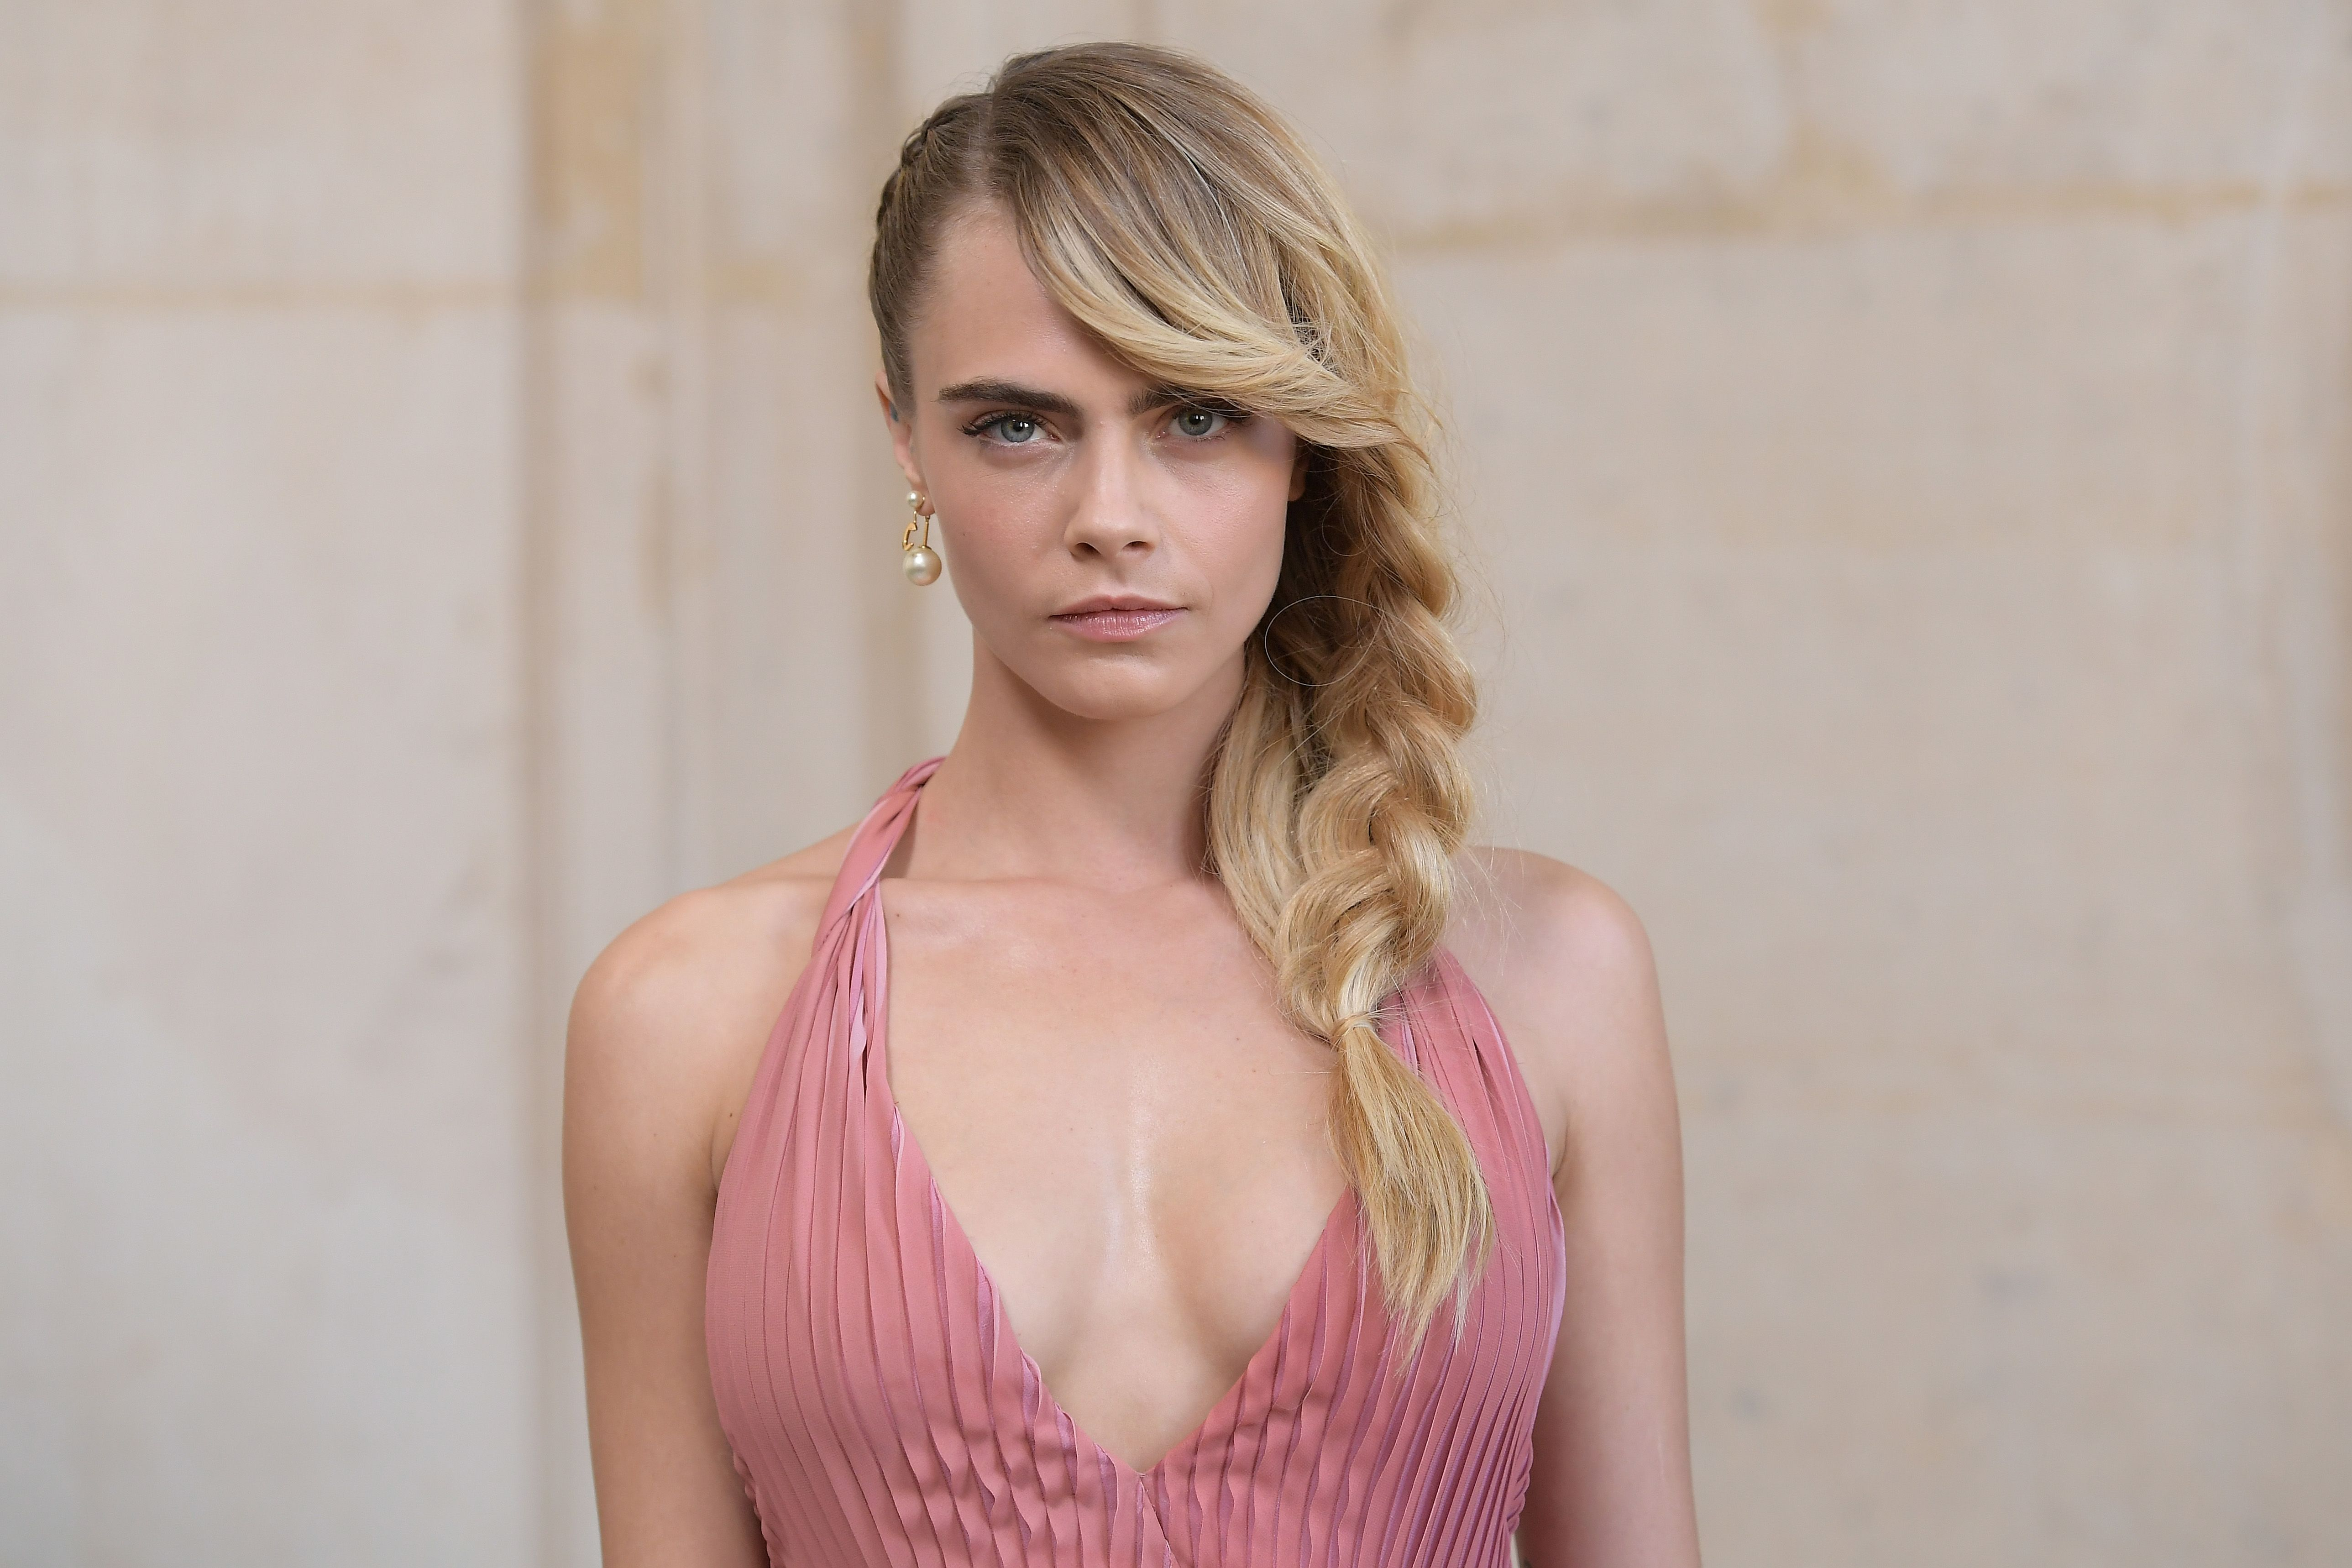 Cara Delevingne Is Obsessed With Ashley Benson's Nude Instagram Photos